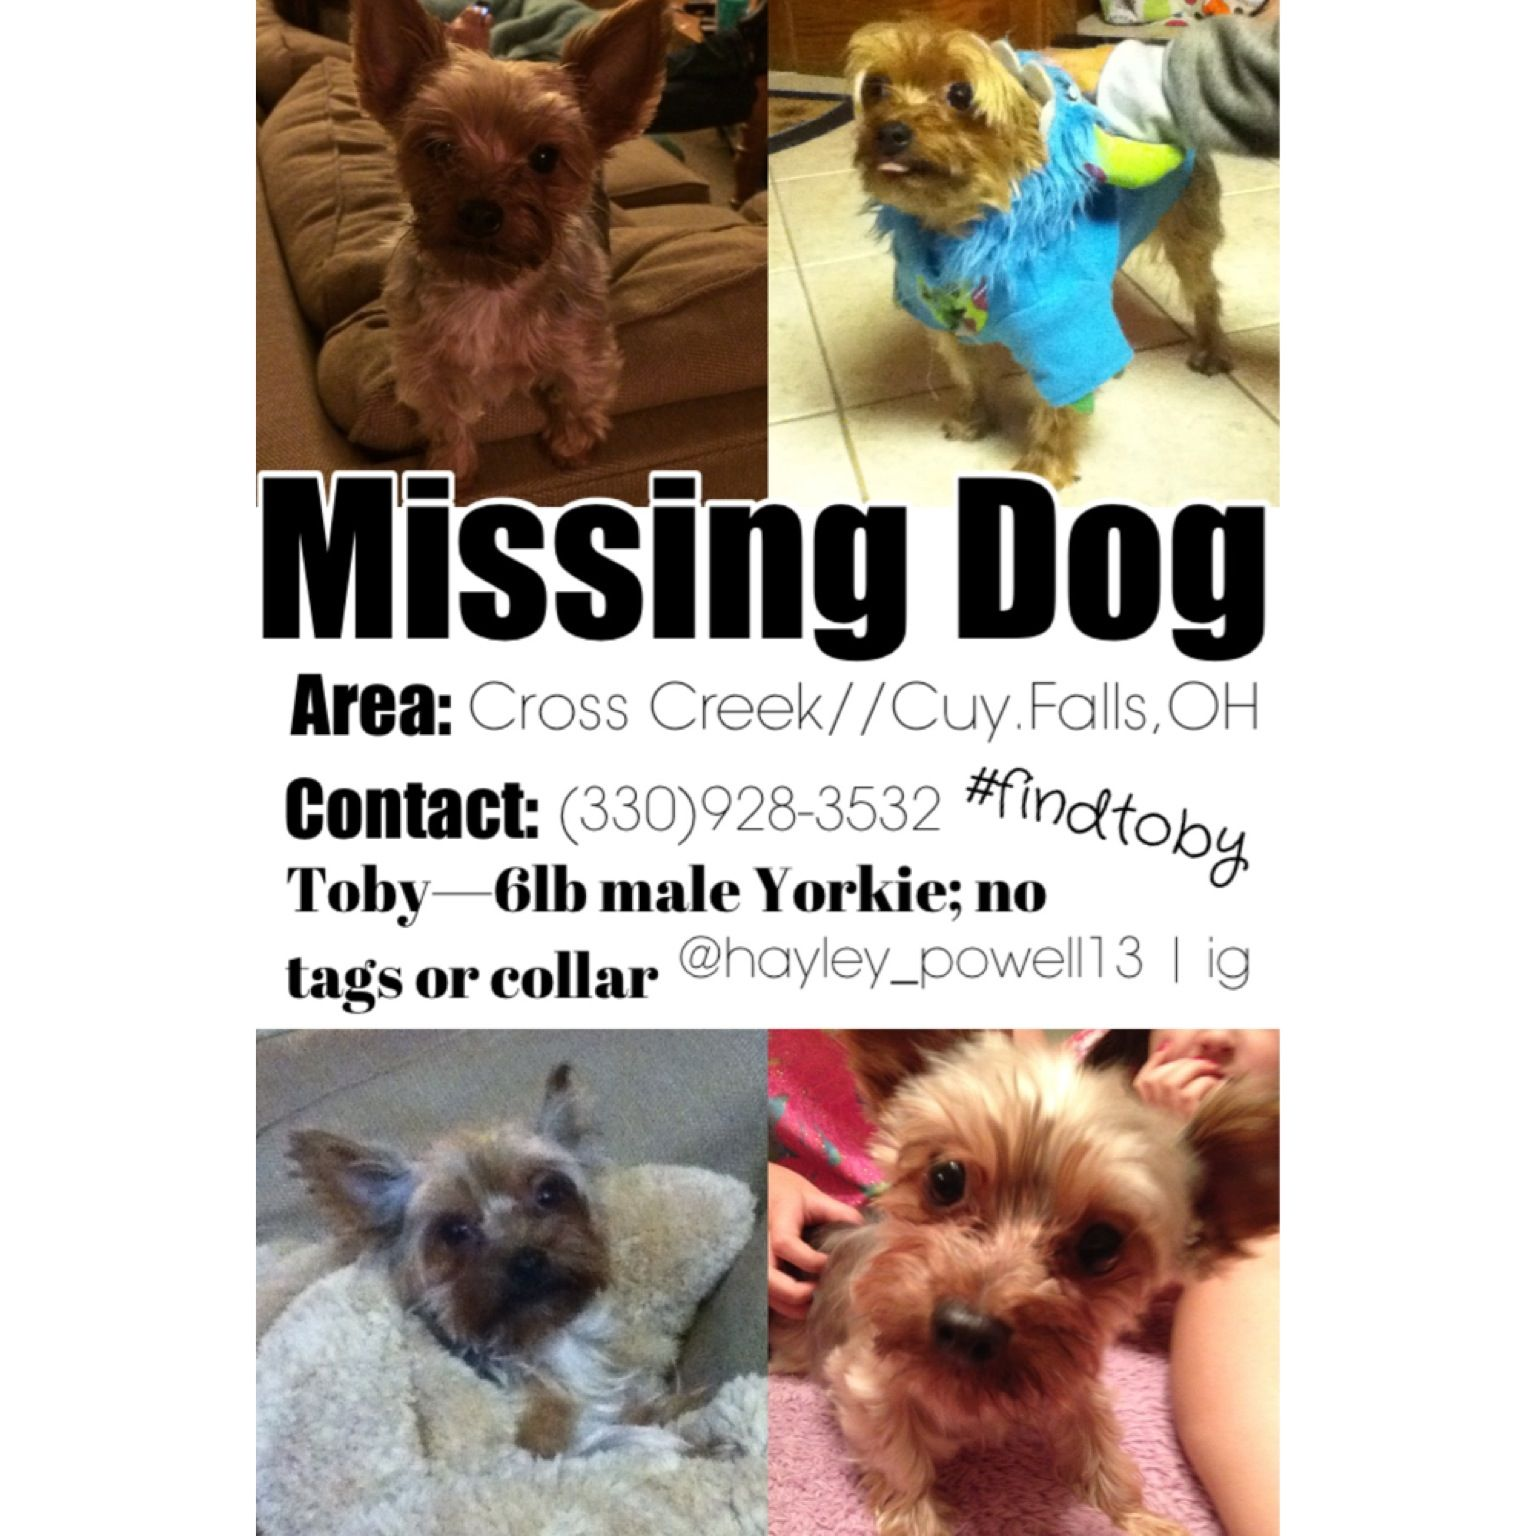 Guys. My dog, Toby, has been missing sinse 2/15/14. He is a 6 pound Yorkie and is probably in Cross Creek Cuyahoga Falls Ohio. If you see him please contact me at 330.928.3532 Please repost